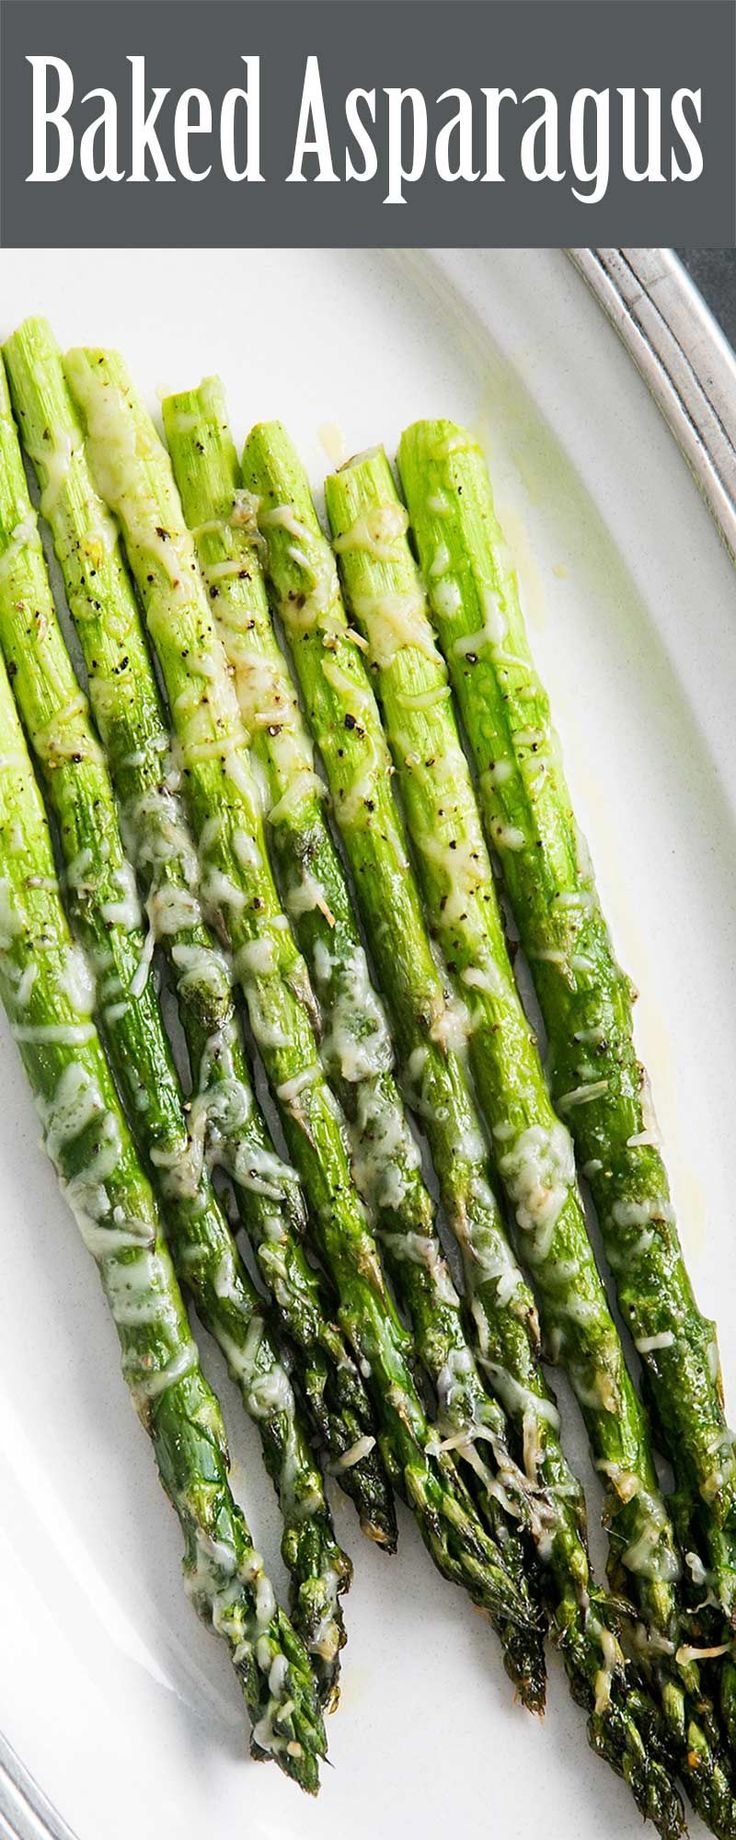 Baked Asparagus With Parmesan ~ So Easy And Elegant! Asparagus Spears,  Trimmed And Sprinkled